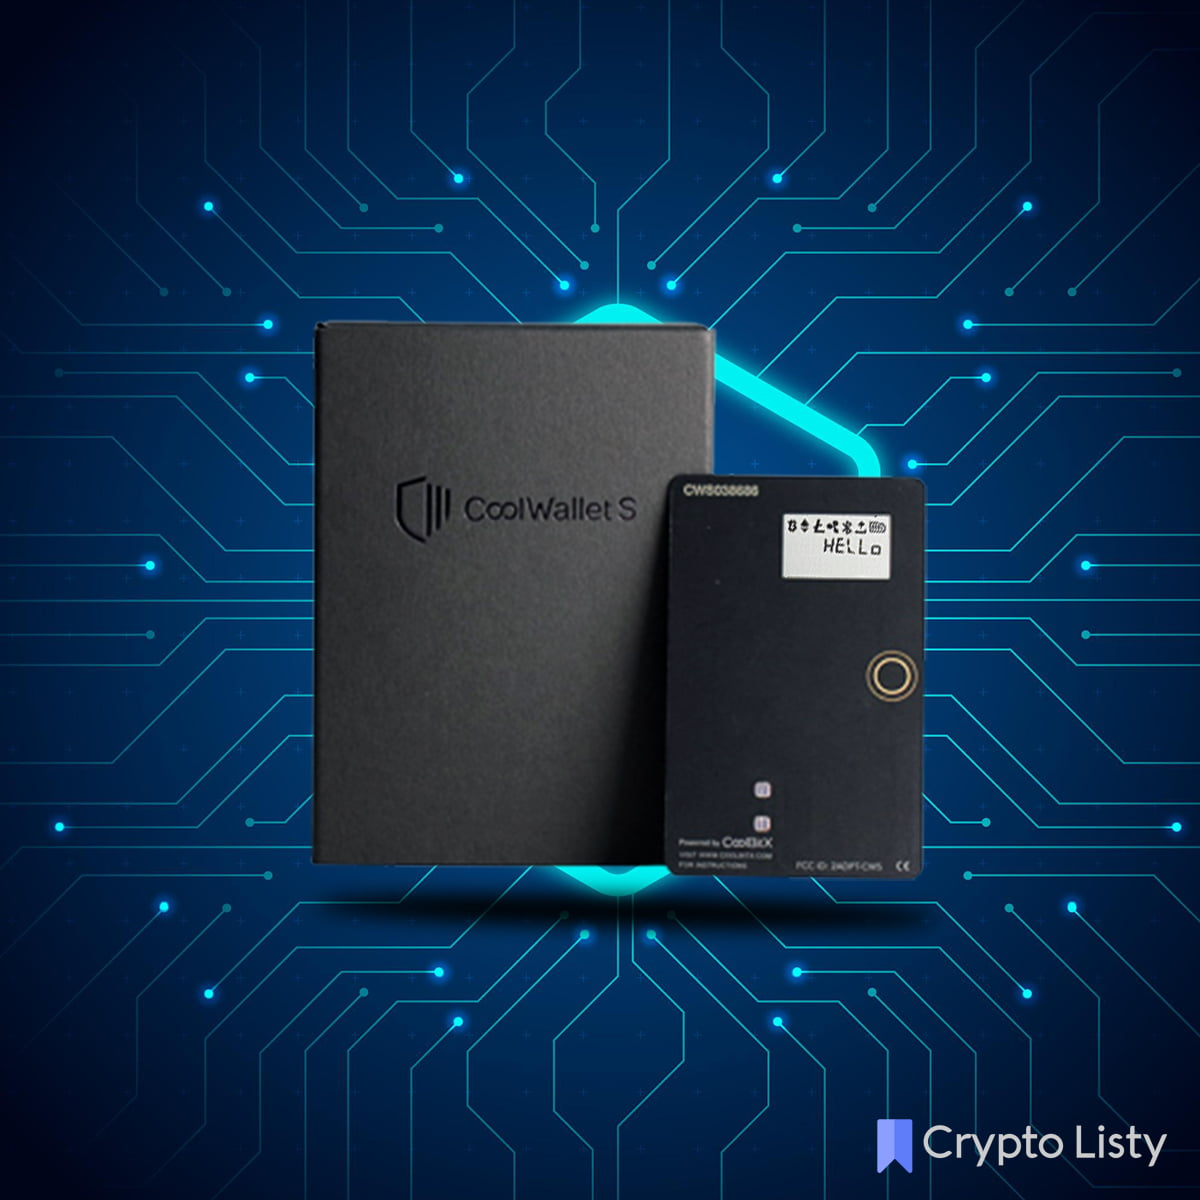 CoolWallet S device.